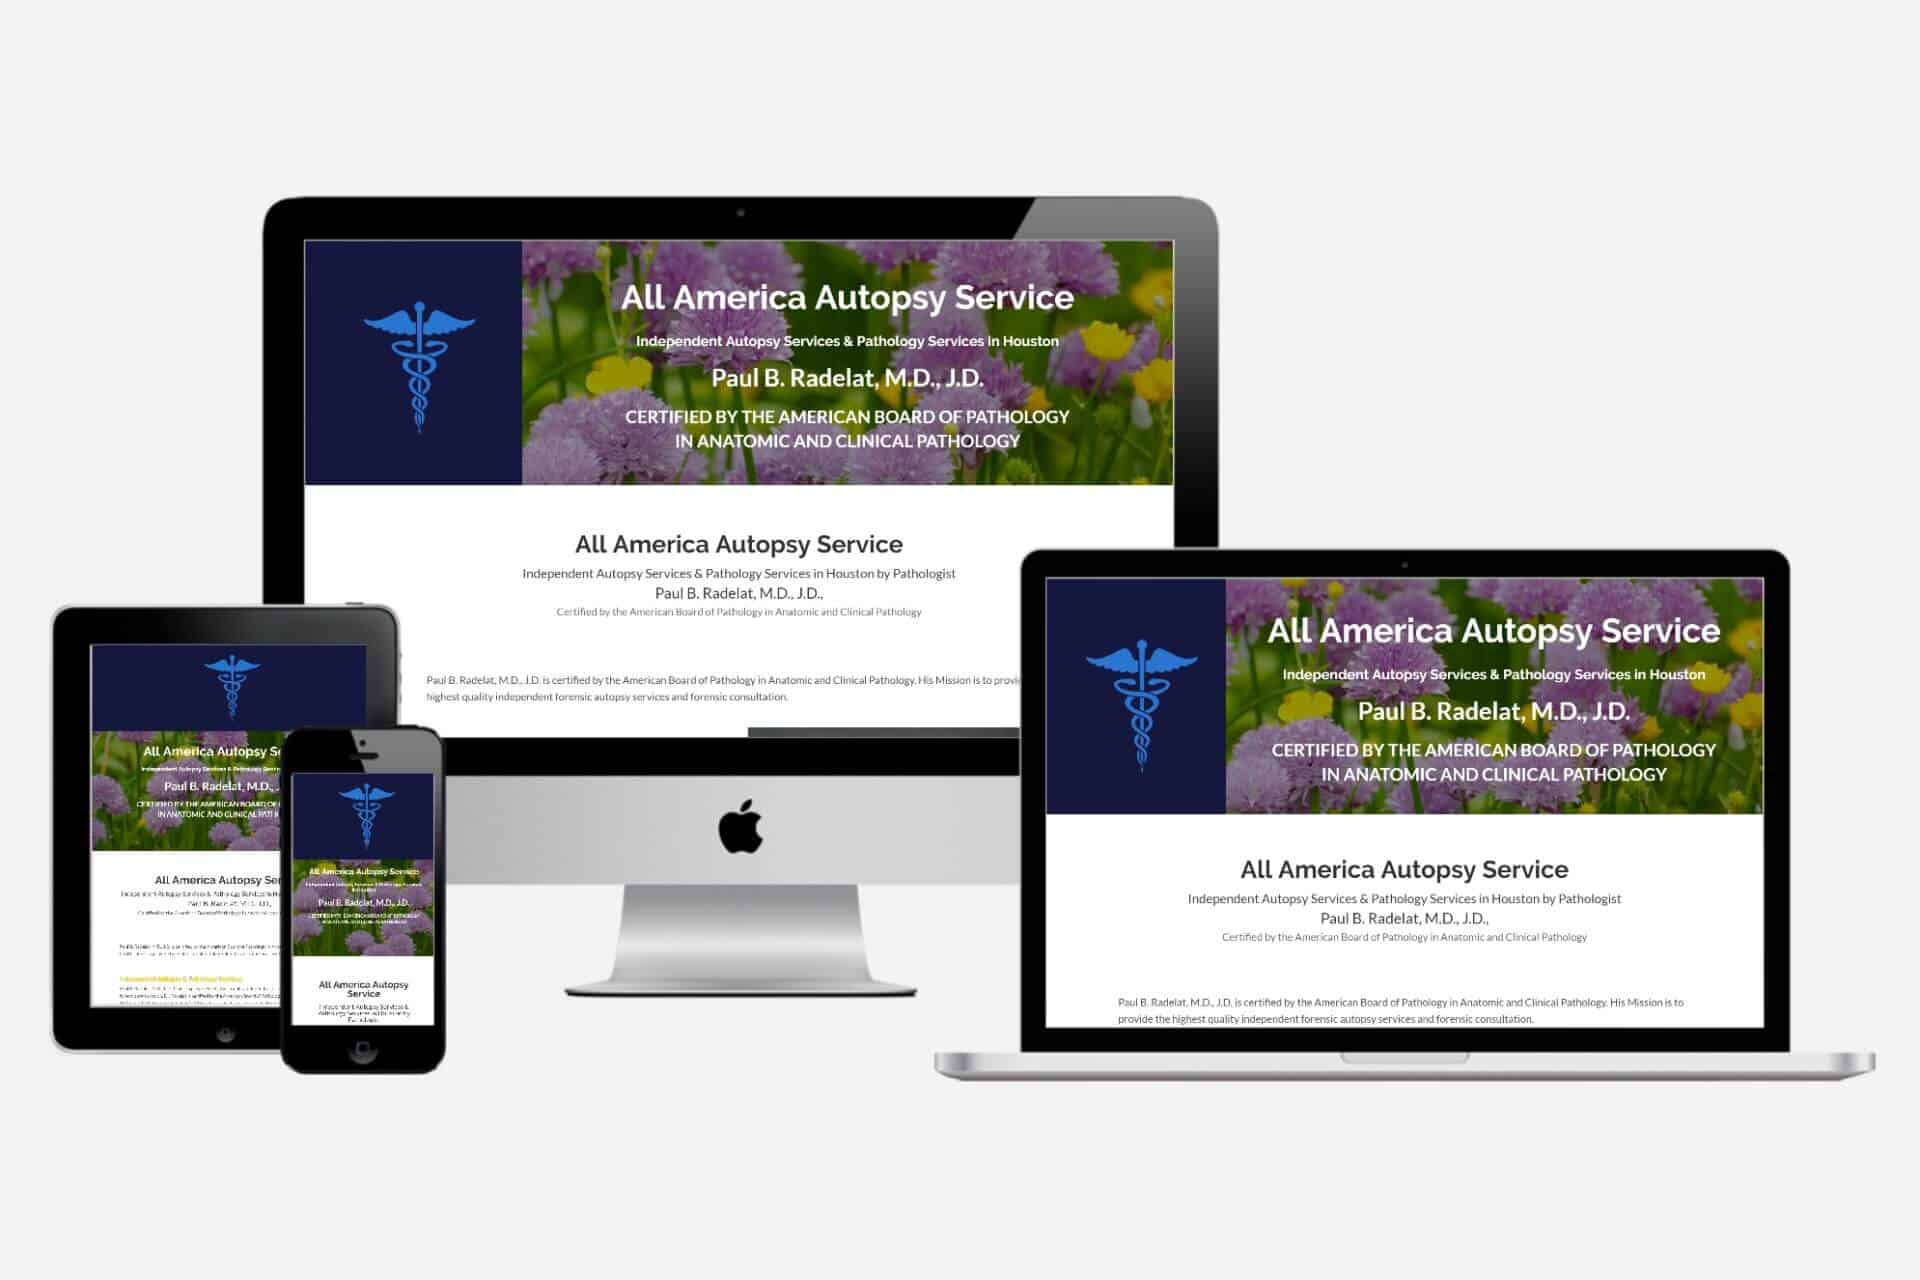 All America Autopsy Service Website Design by WizardsWebs Design LLC